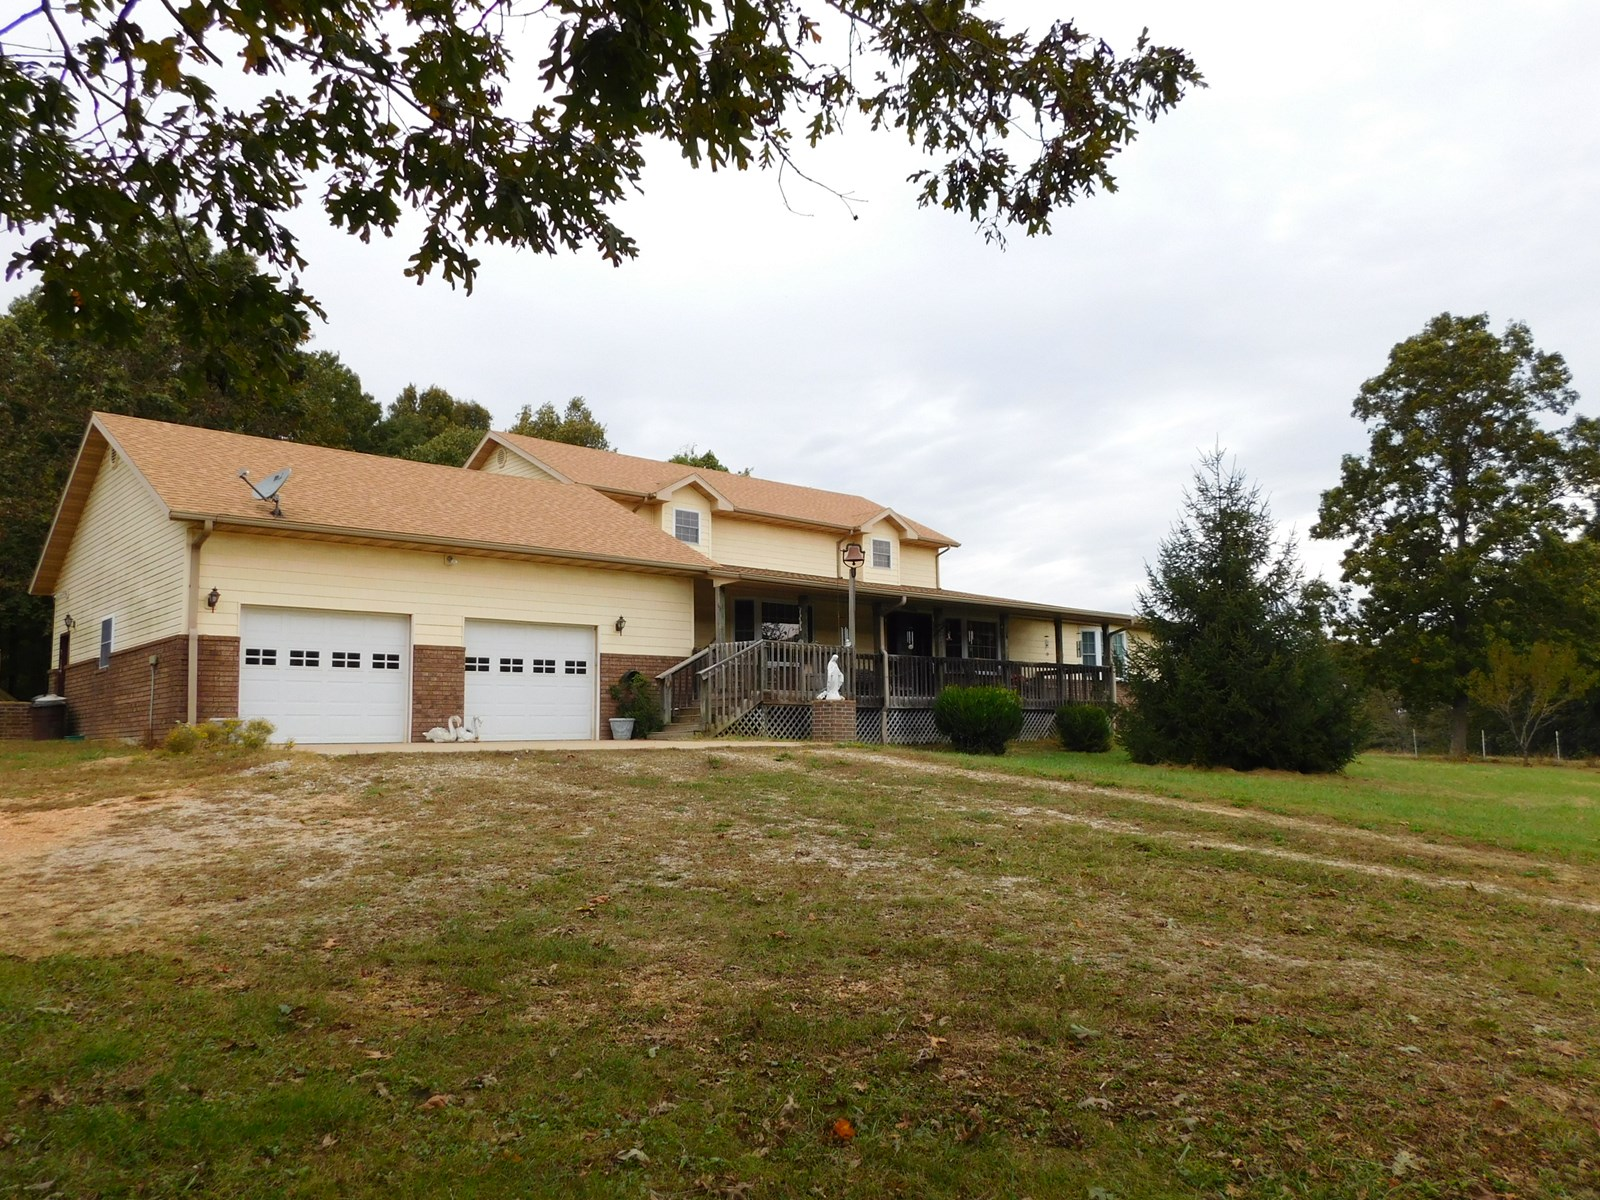 Missouri Ozarks Farm with Large Home for Sale